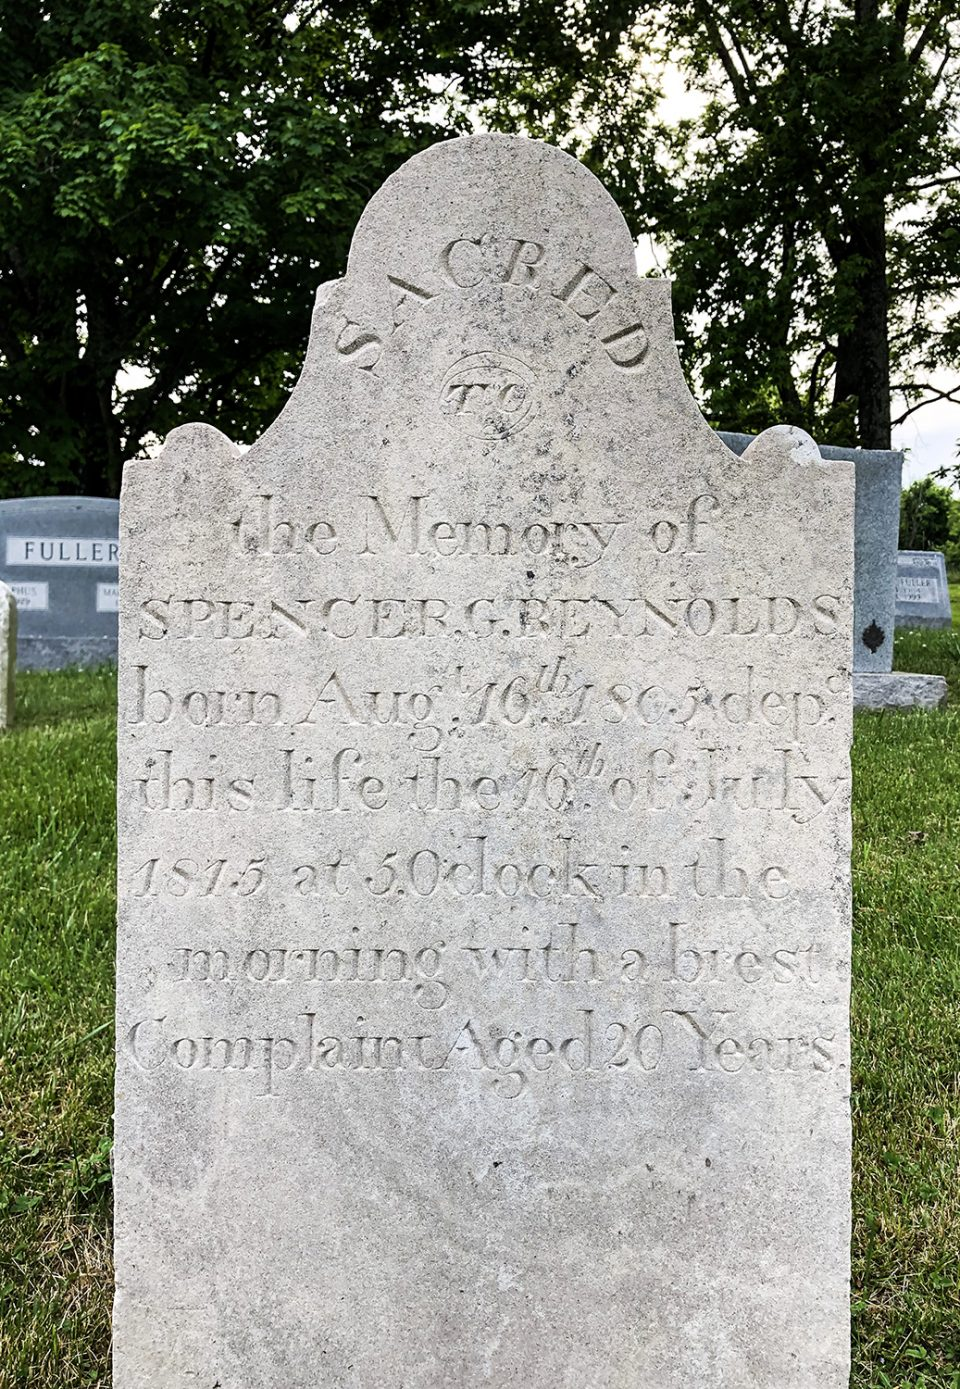 """Tombstone in the Riggs Crossroads Cemetery in Williamson County, Tennessee: """"Sacred to the memory of Spencer G. Reynolds, born Aug. 16th, 1805 or 2. Dep.d this life the 16th of July 1815 at 5 o'clock in the morning with a brest Complaint. Aged 20 years."""""""